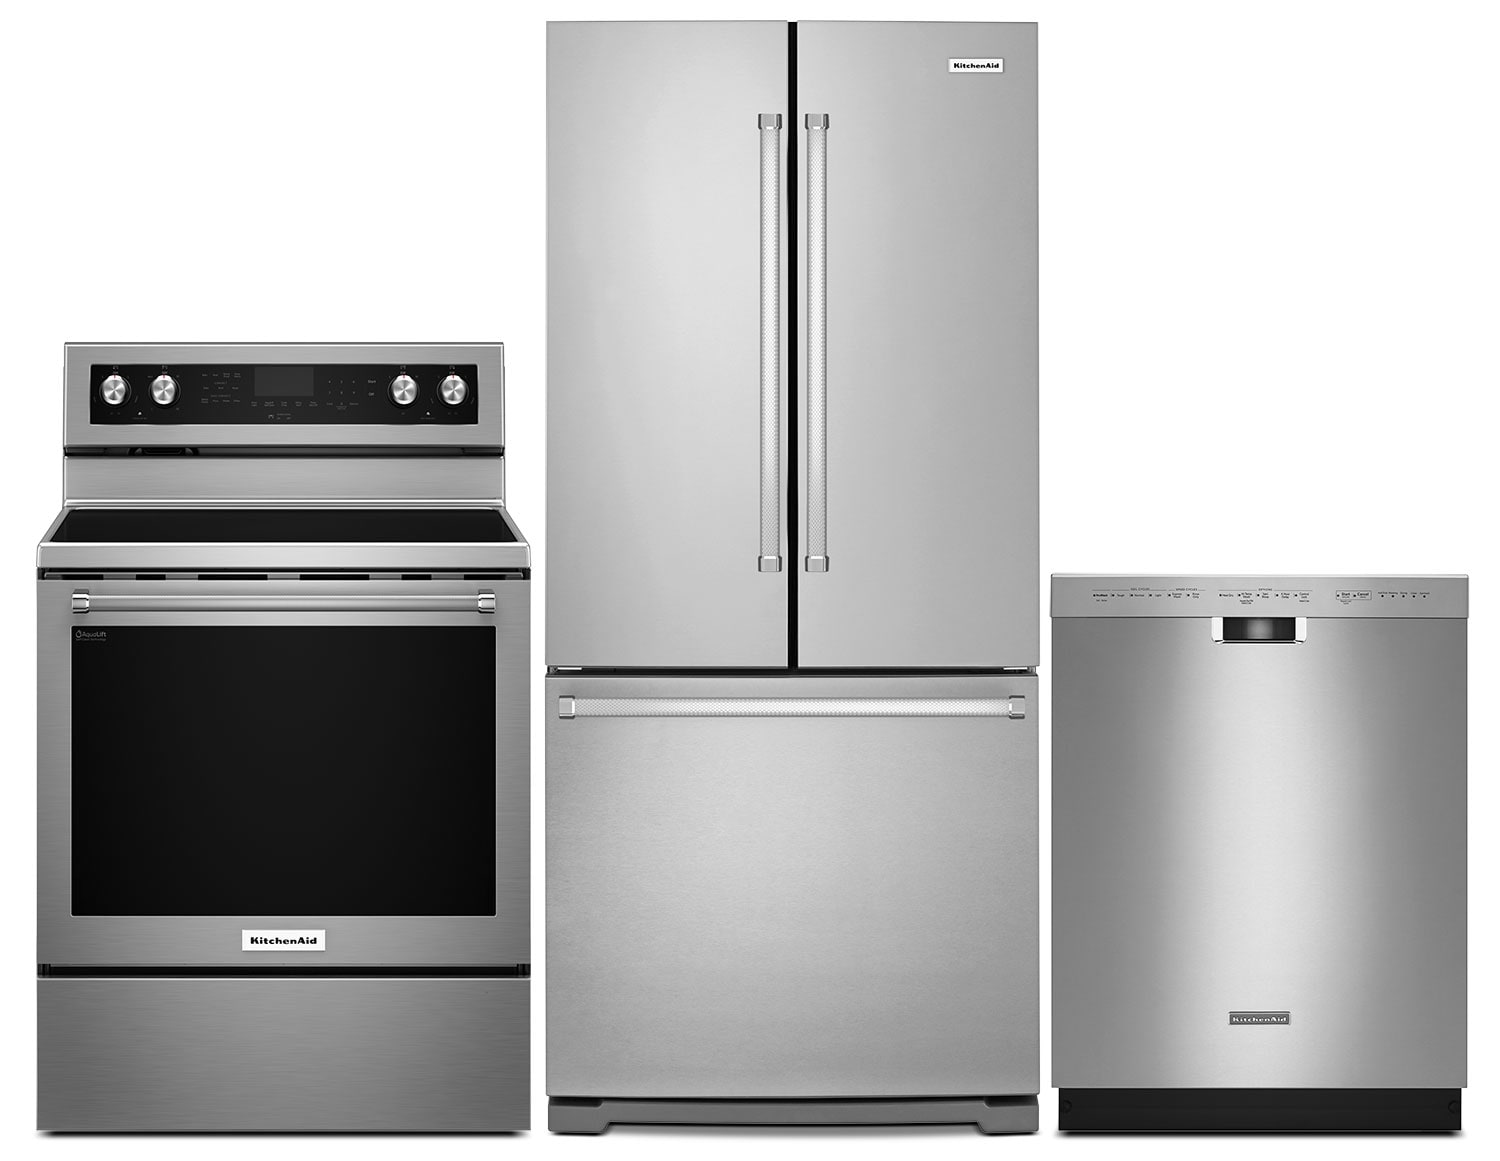 """Clean-Up - KitchenAid 19.7 Cu. Ft. Refrigerator, 6.4 Cu. Ft. Range and 24"""" Dishwasher- Stainless Steel"""